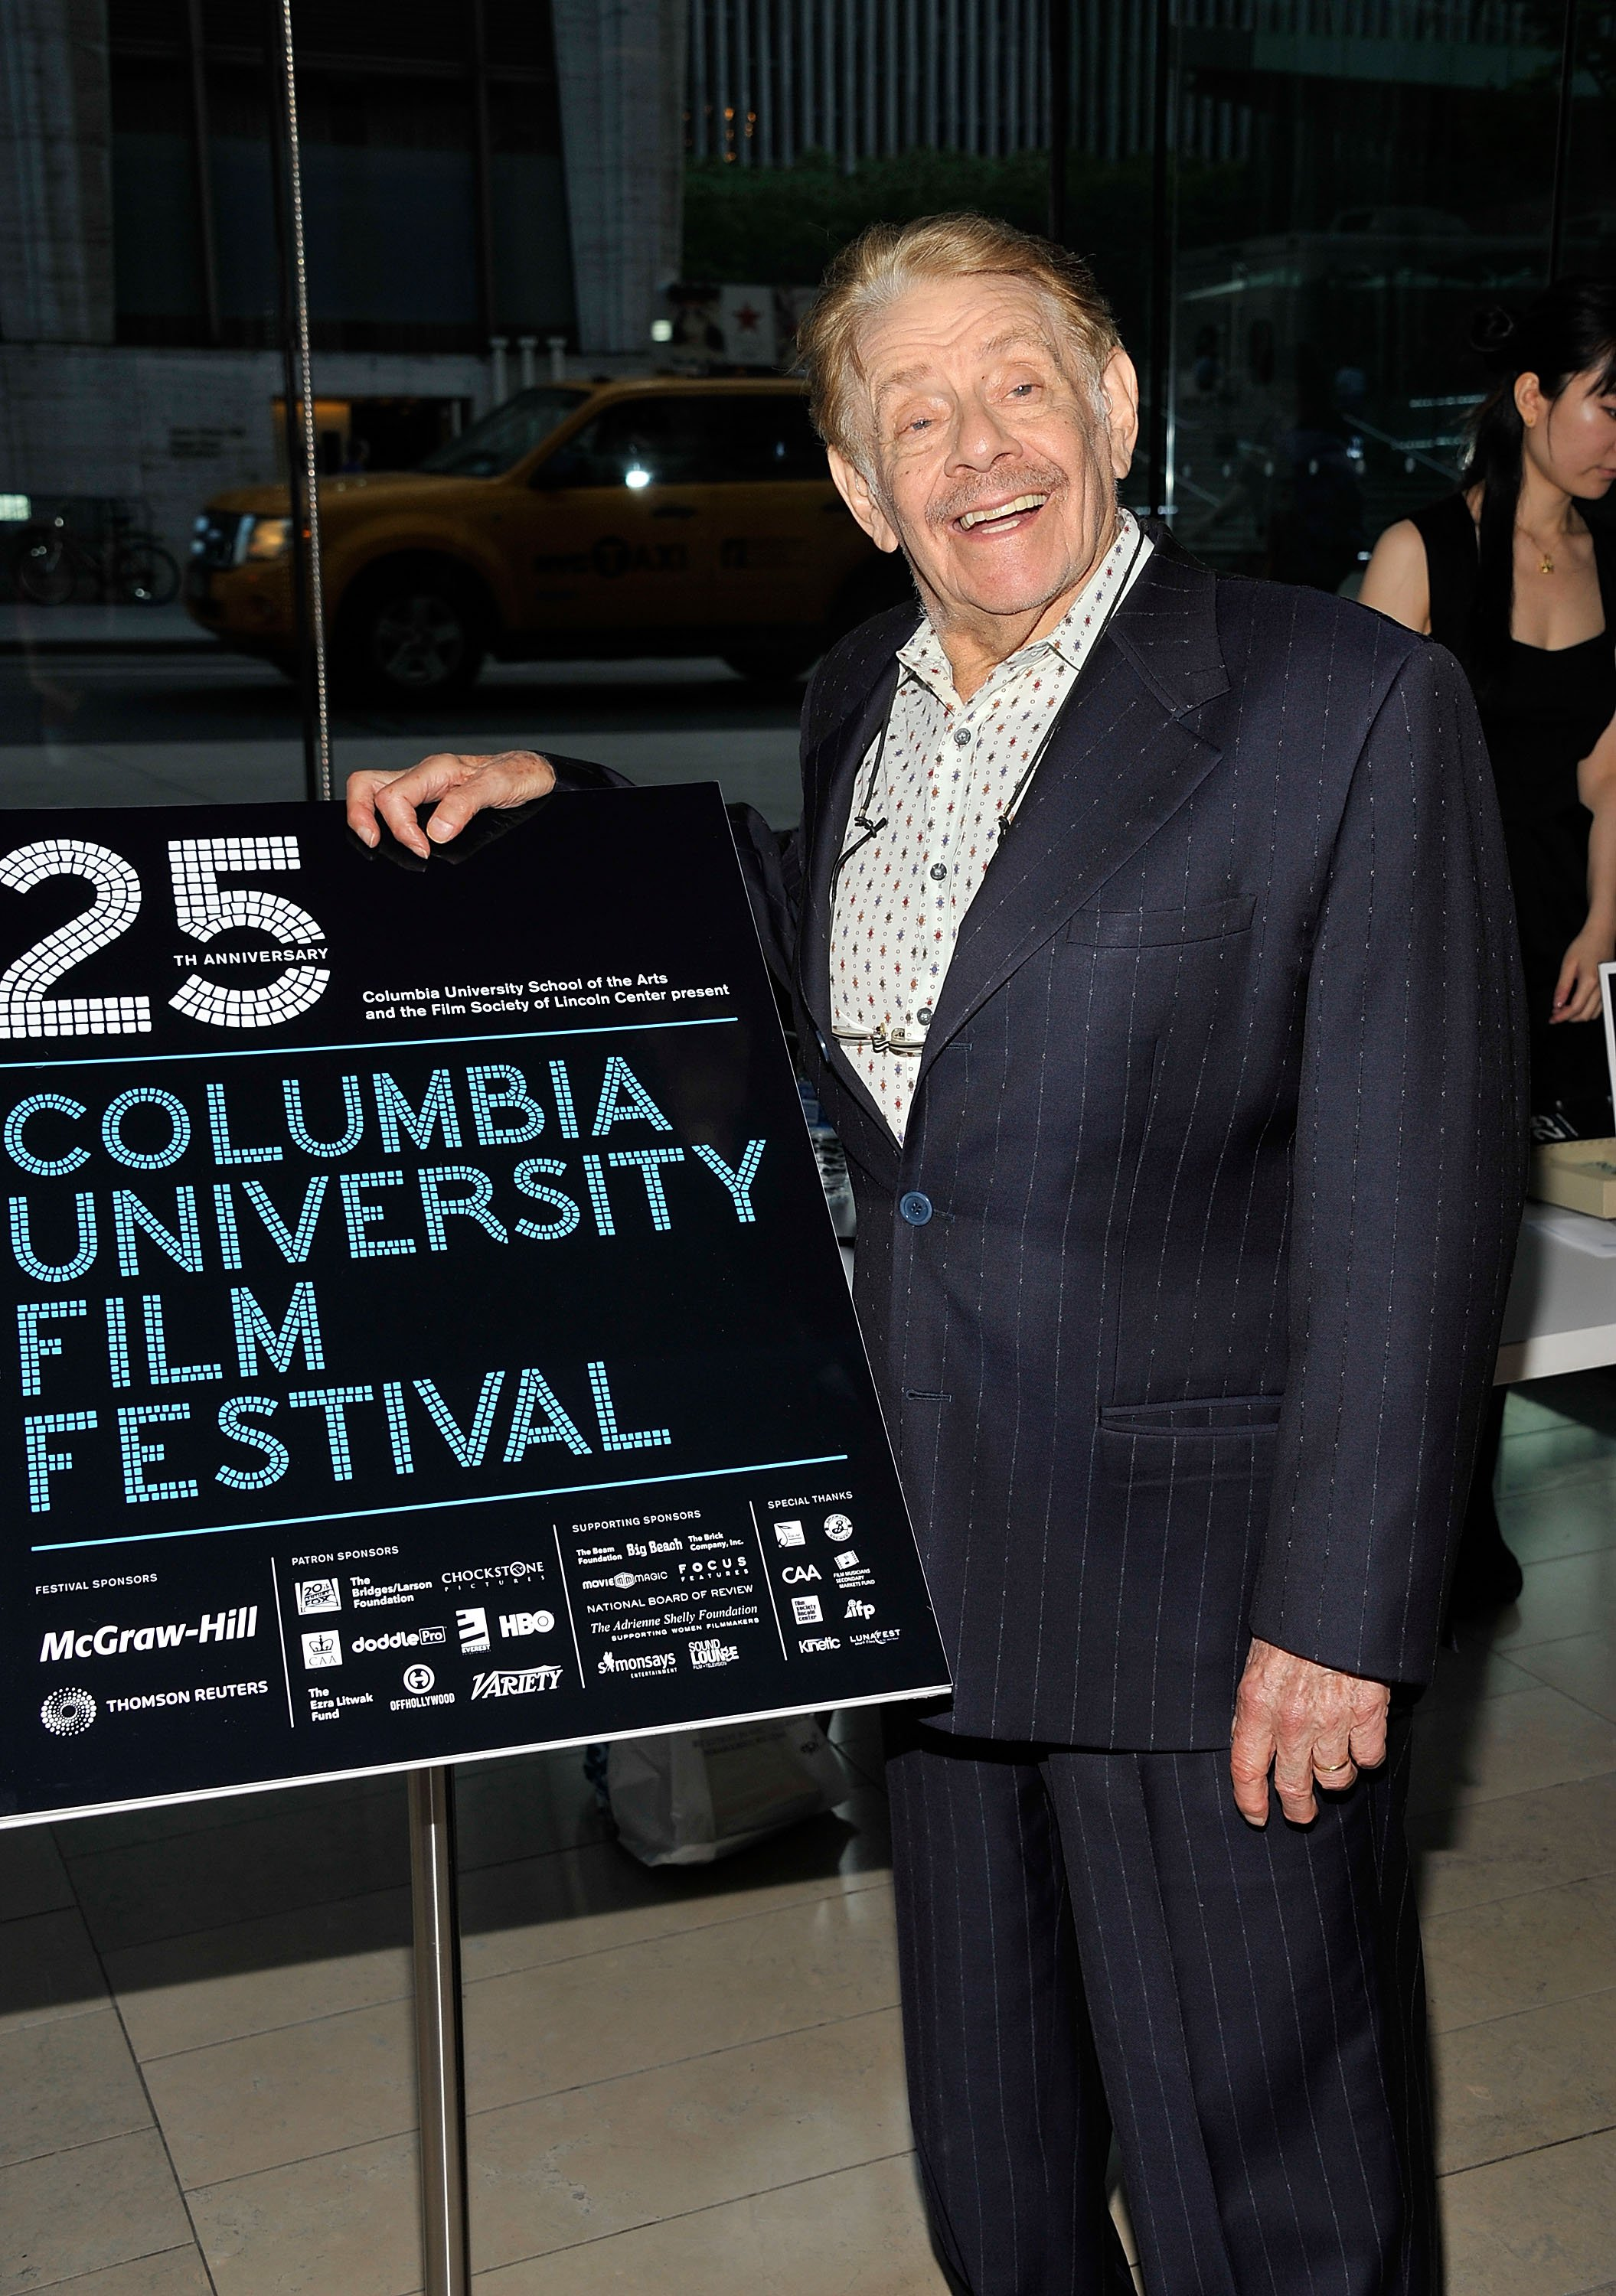 Jerry Stiller attends the 25th anniversary of Columbia University's Film Festival at Alice Tully Hall on May 4, 2012 | Photo: Getty Images